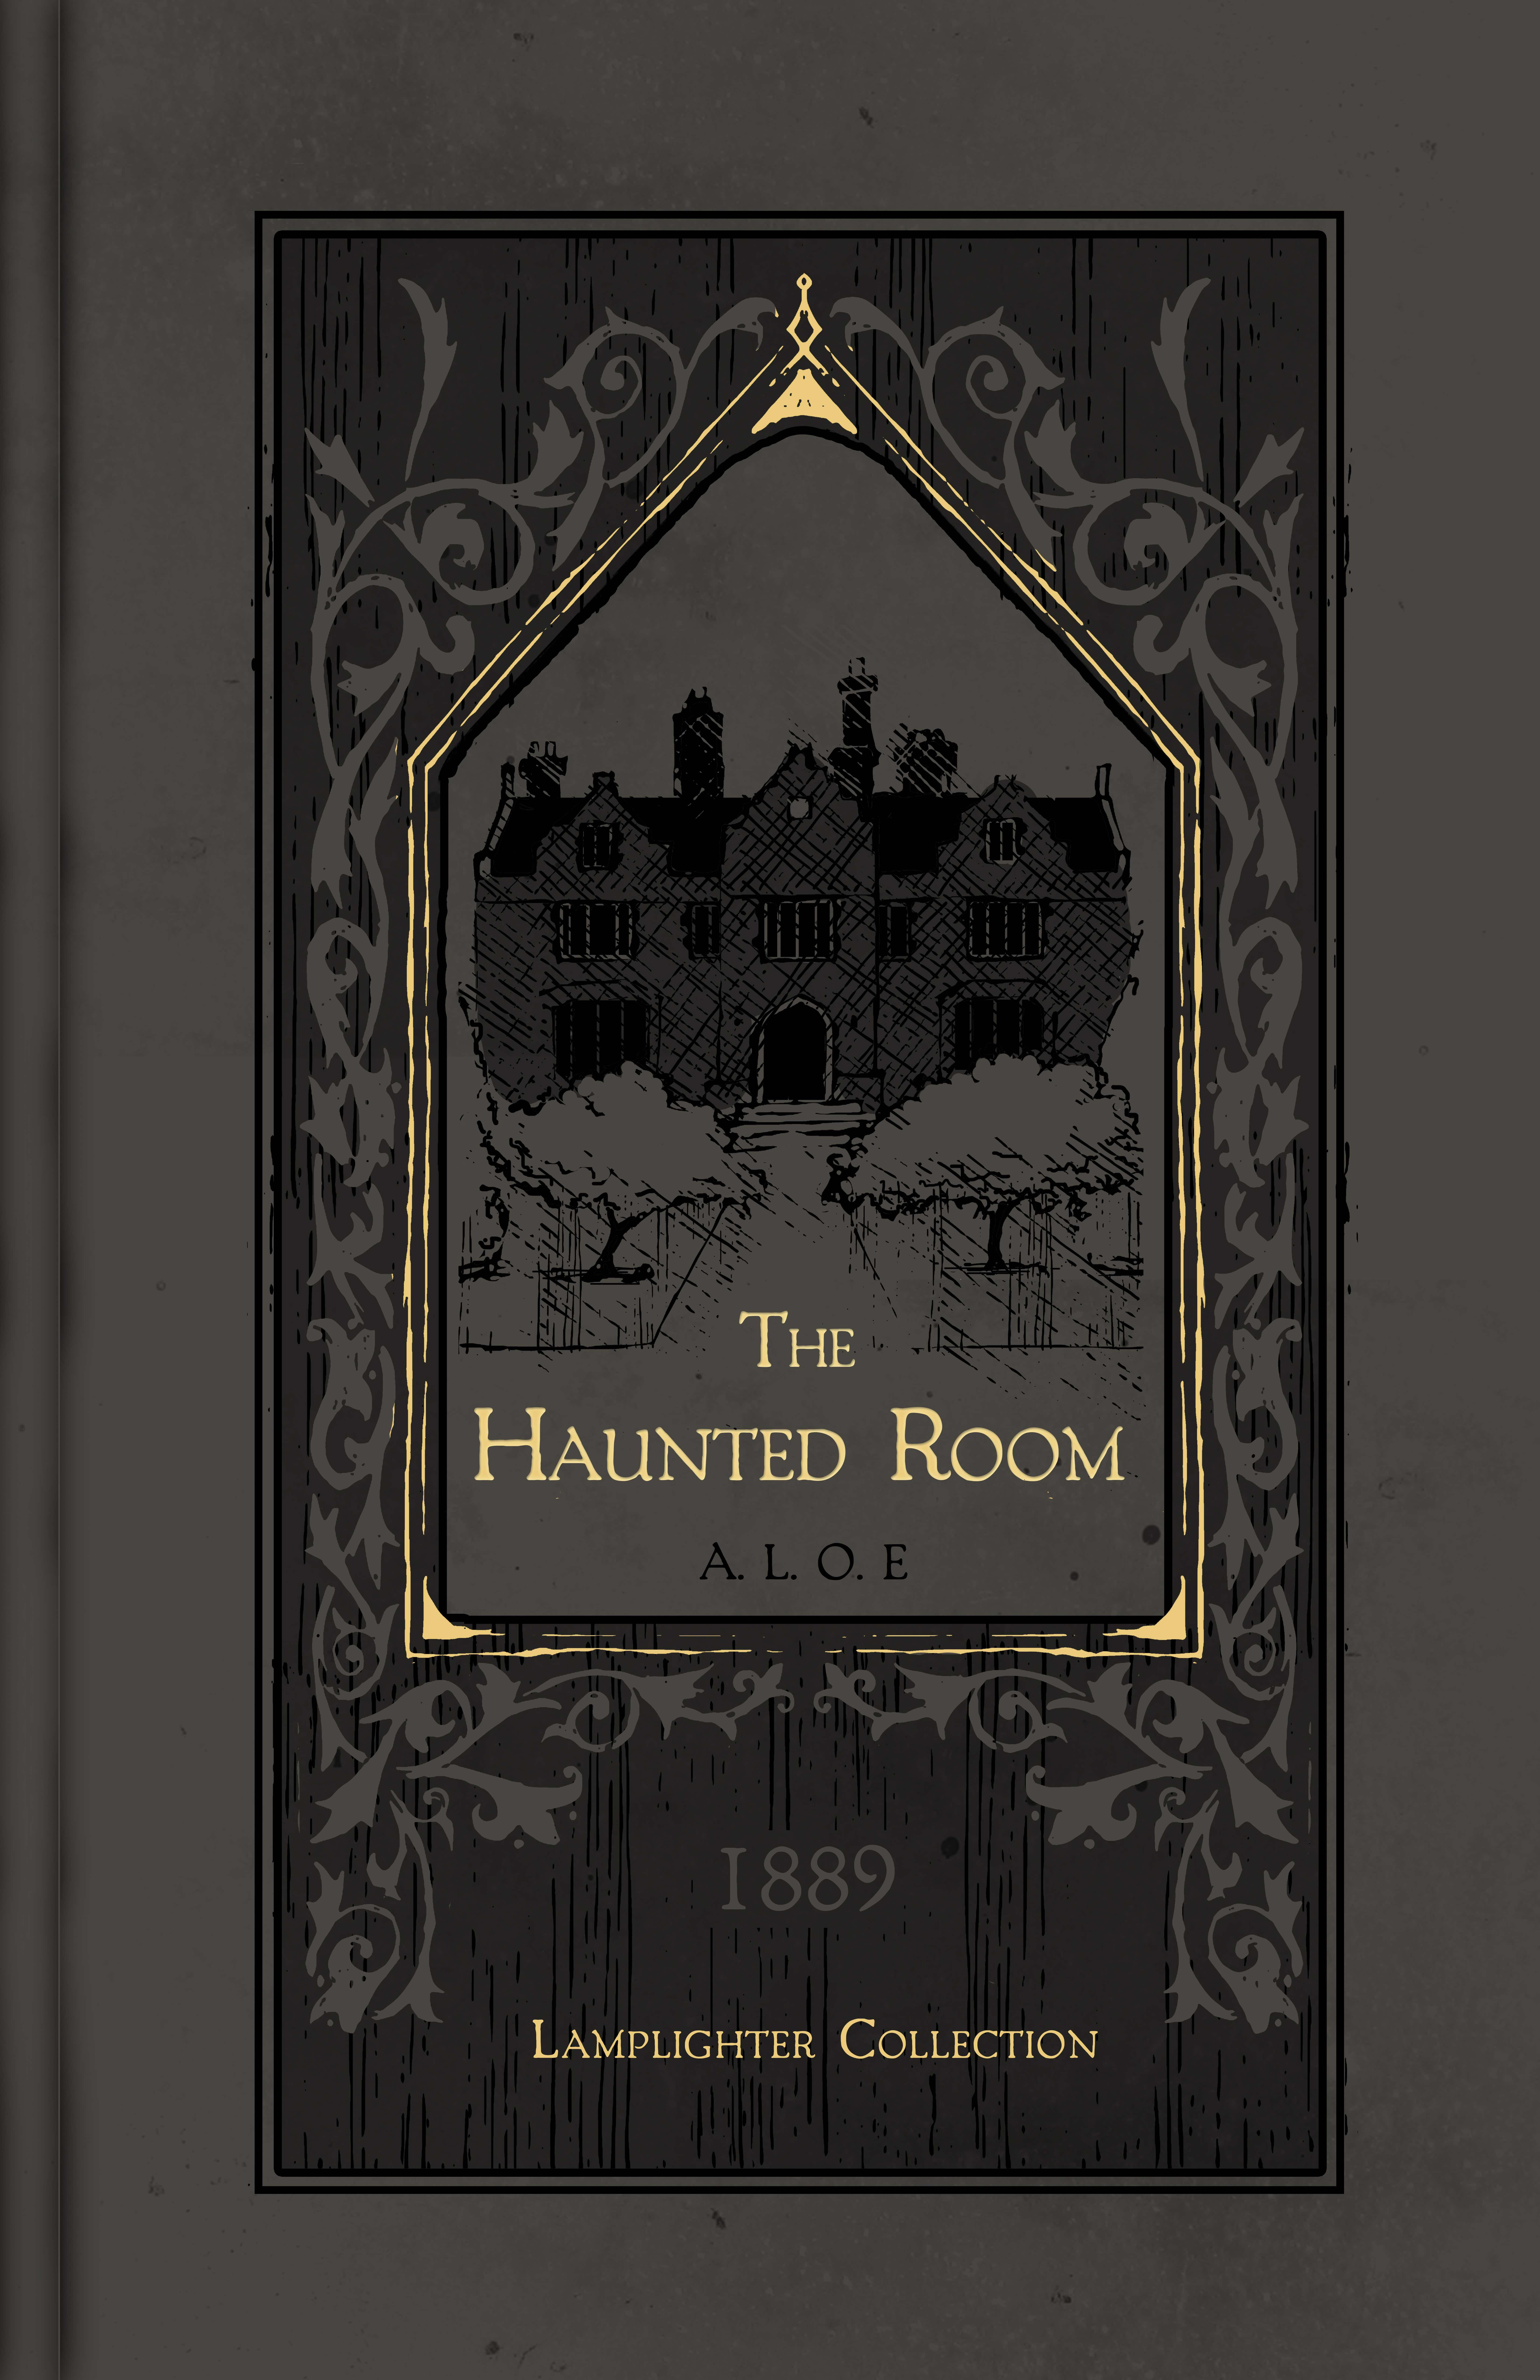 Haunted Room, The